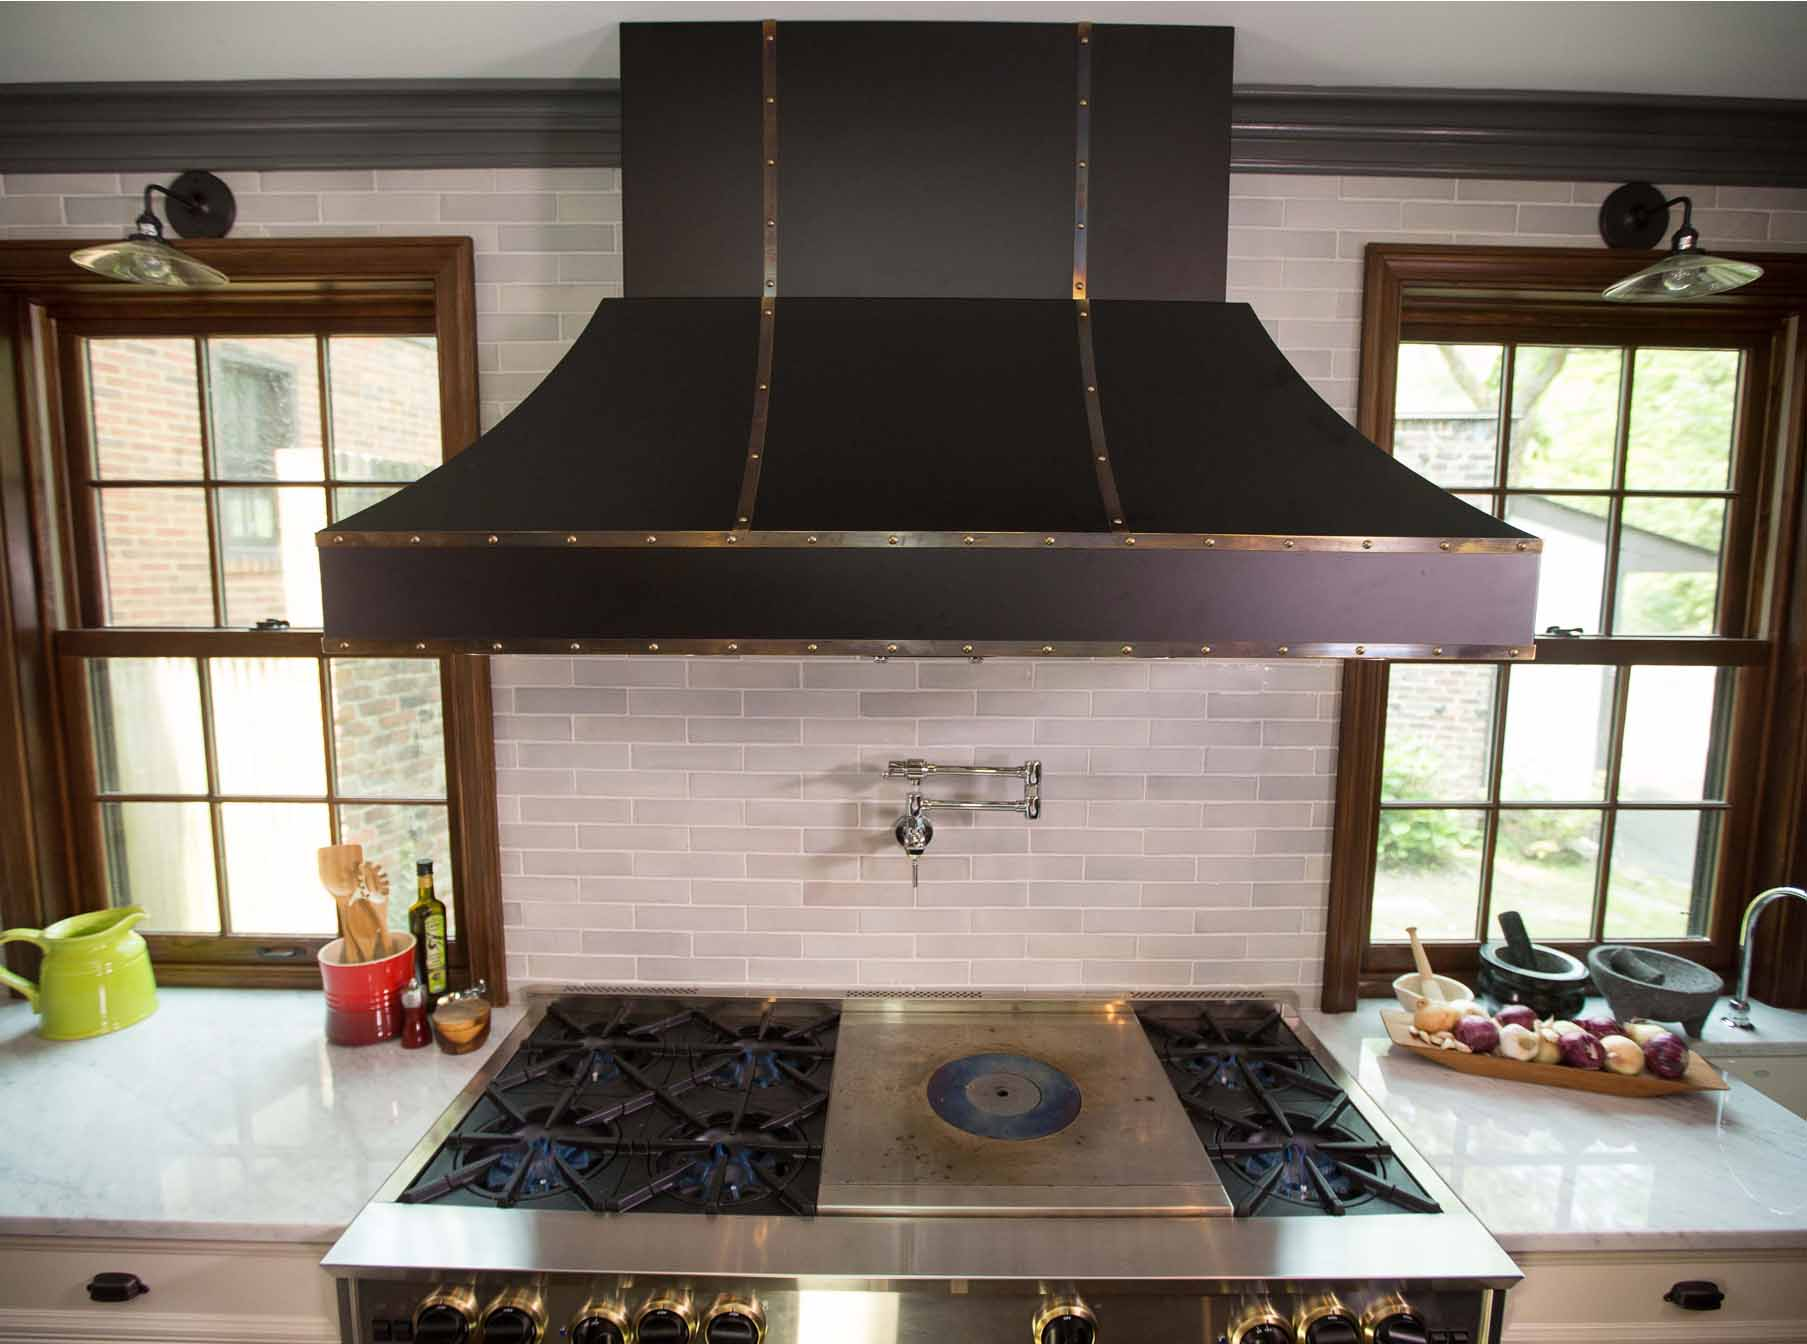 Here are some related professionals and vendors to complement the work of kitchen & bath designers: Designer Hood Gallery - BlueStar